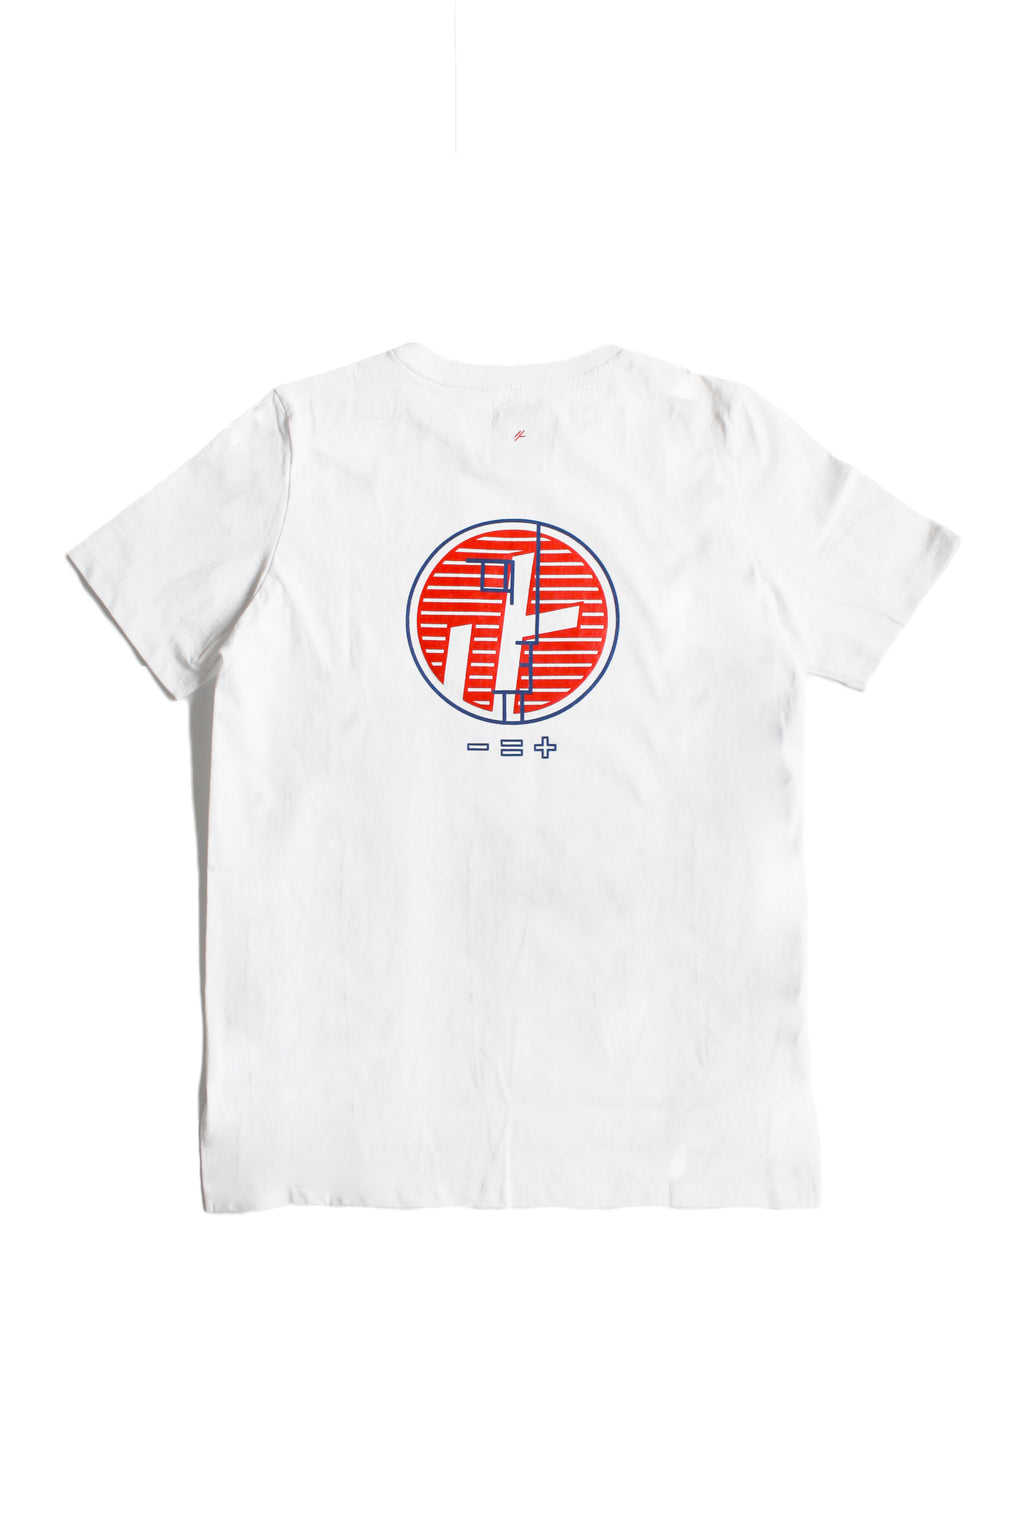 "1. ""FACE THE SUN"" White Tee"